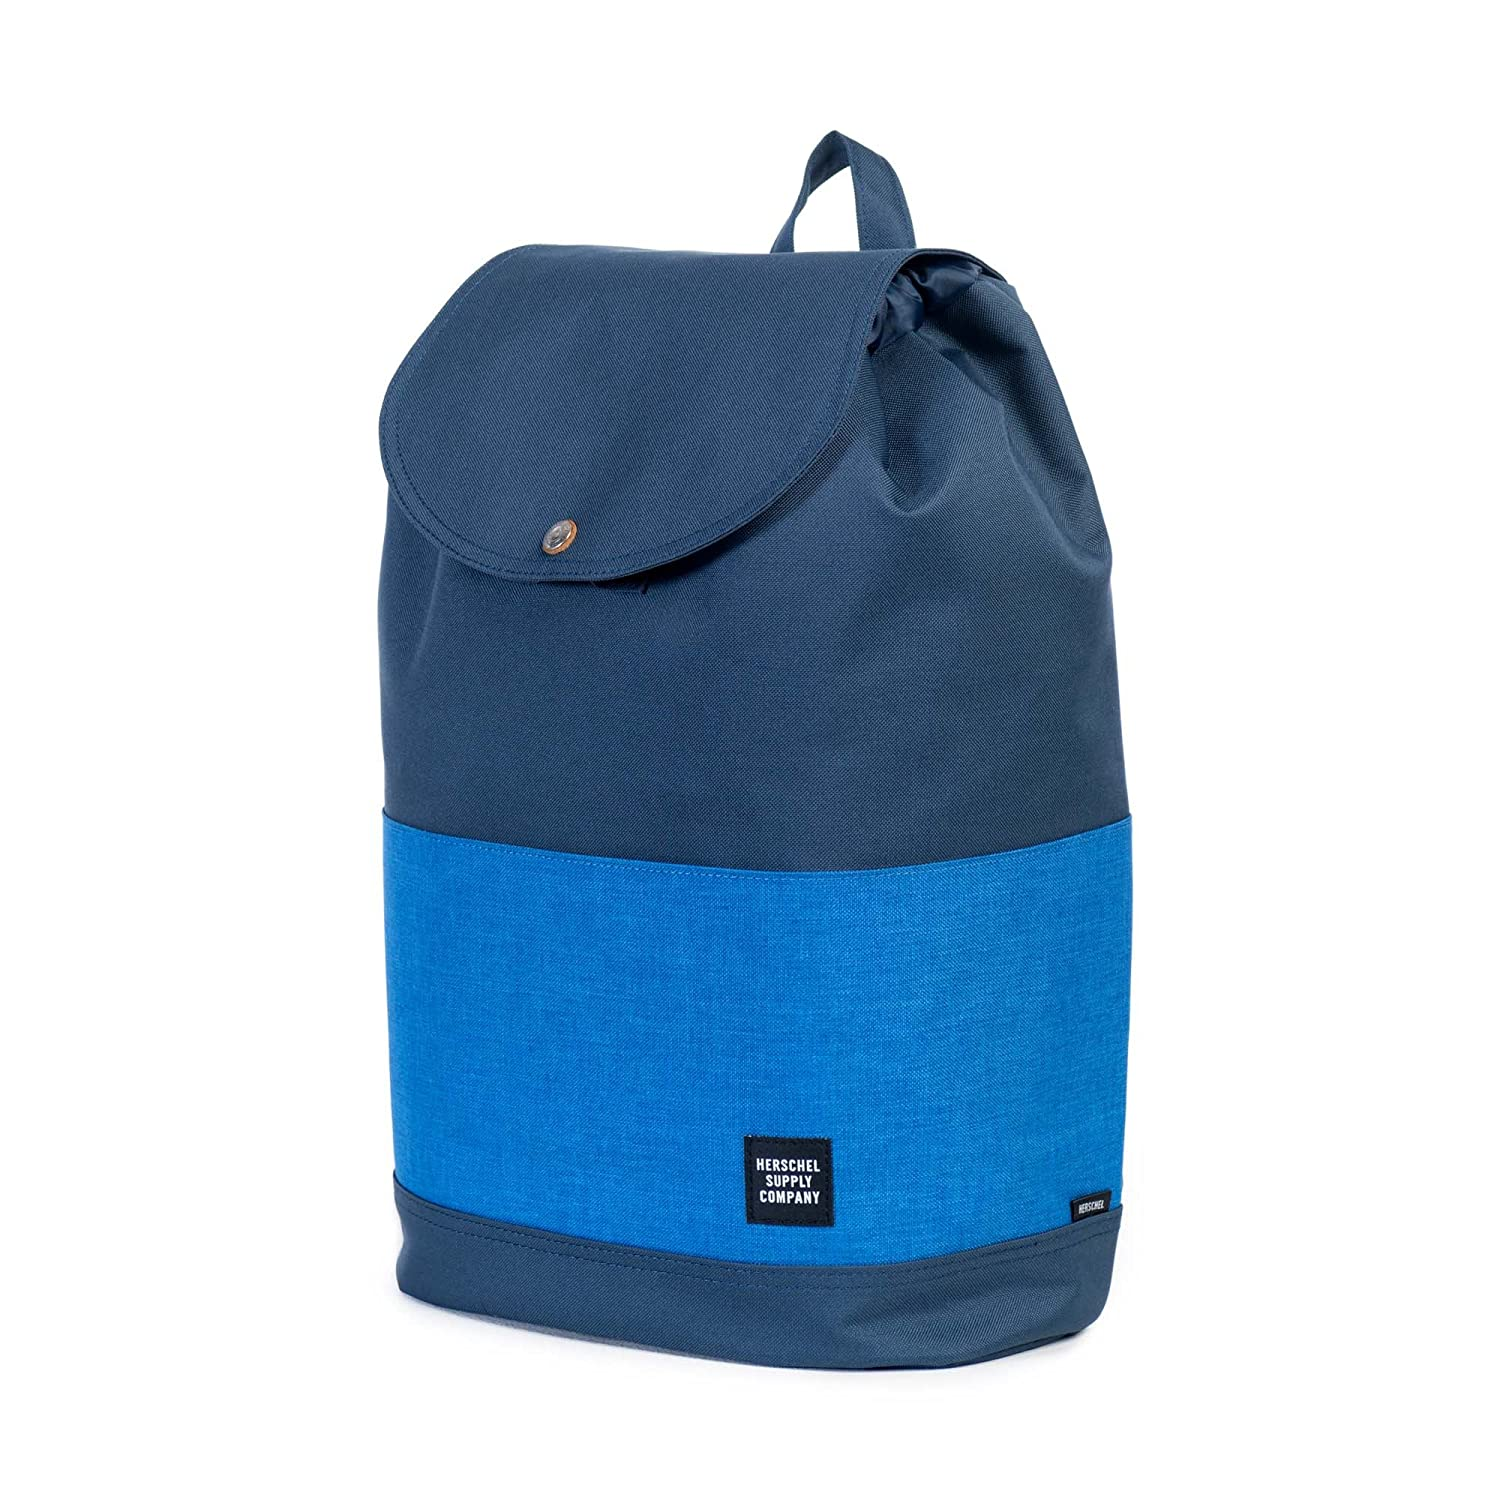 b6157ddcf2e Herschel Supply Co. Reid Backpack Navy cobalt Crosshatch One Size  Amazon.in   Bags, Wallets   Luggage